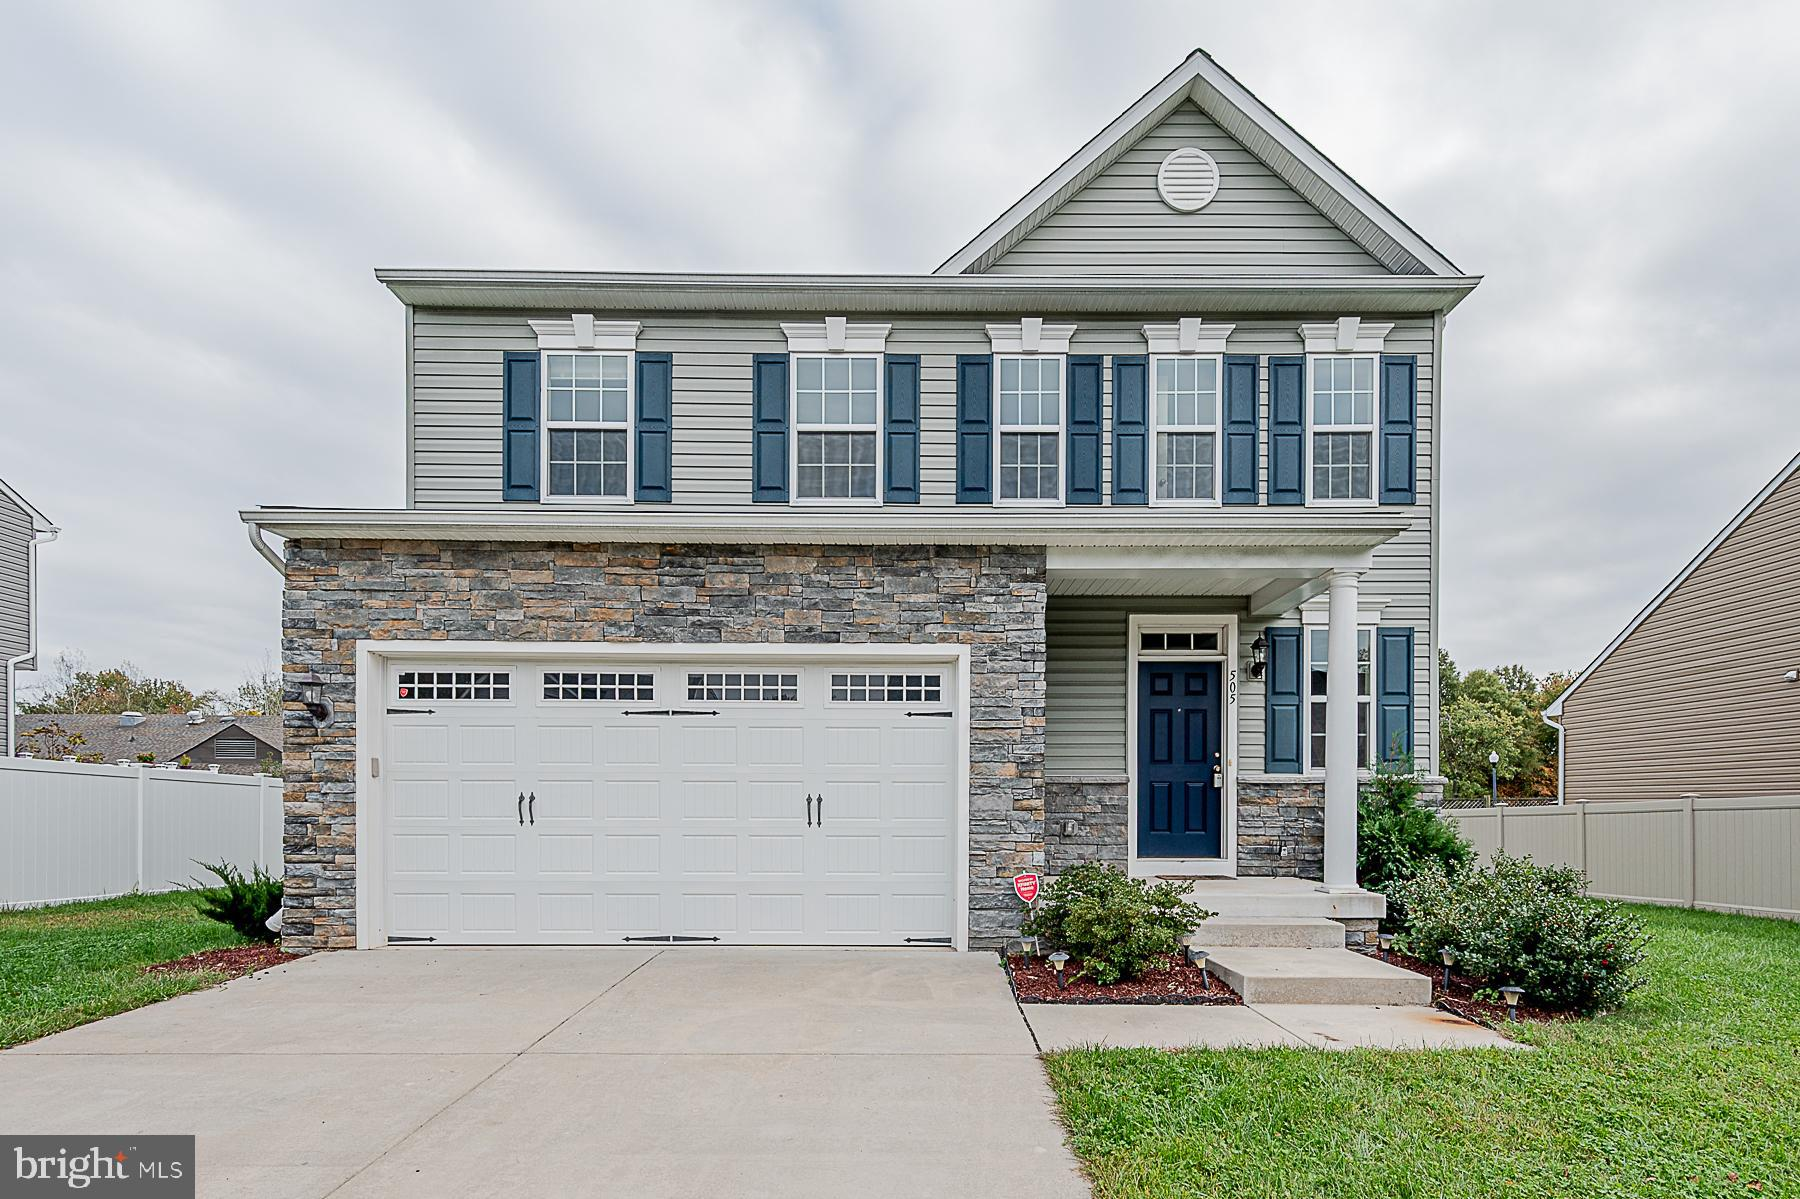 4 years new and GORGEOUS! This beautiful home has appliances that are four years new, BRAND NEW CARP